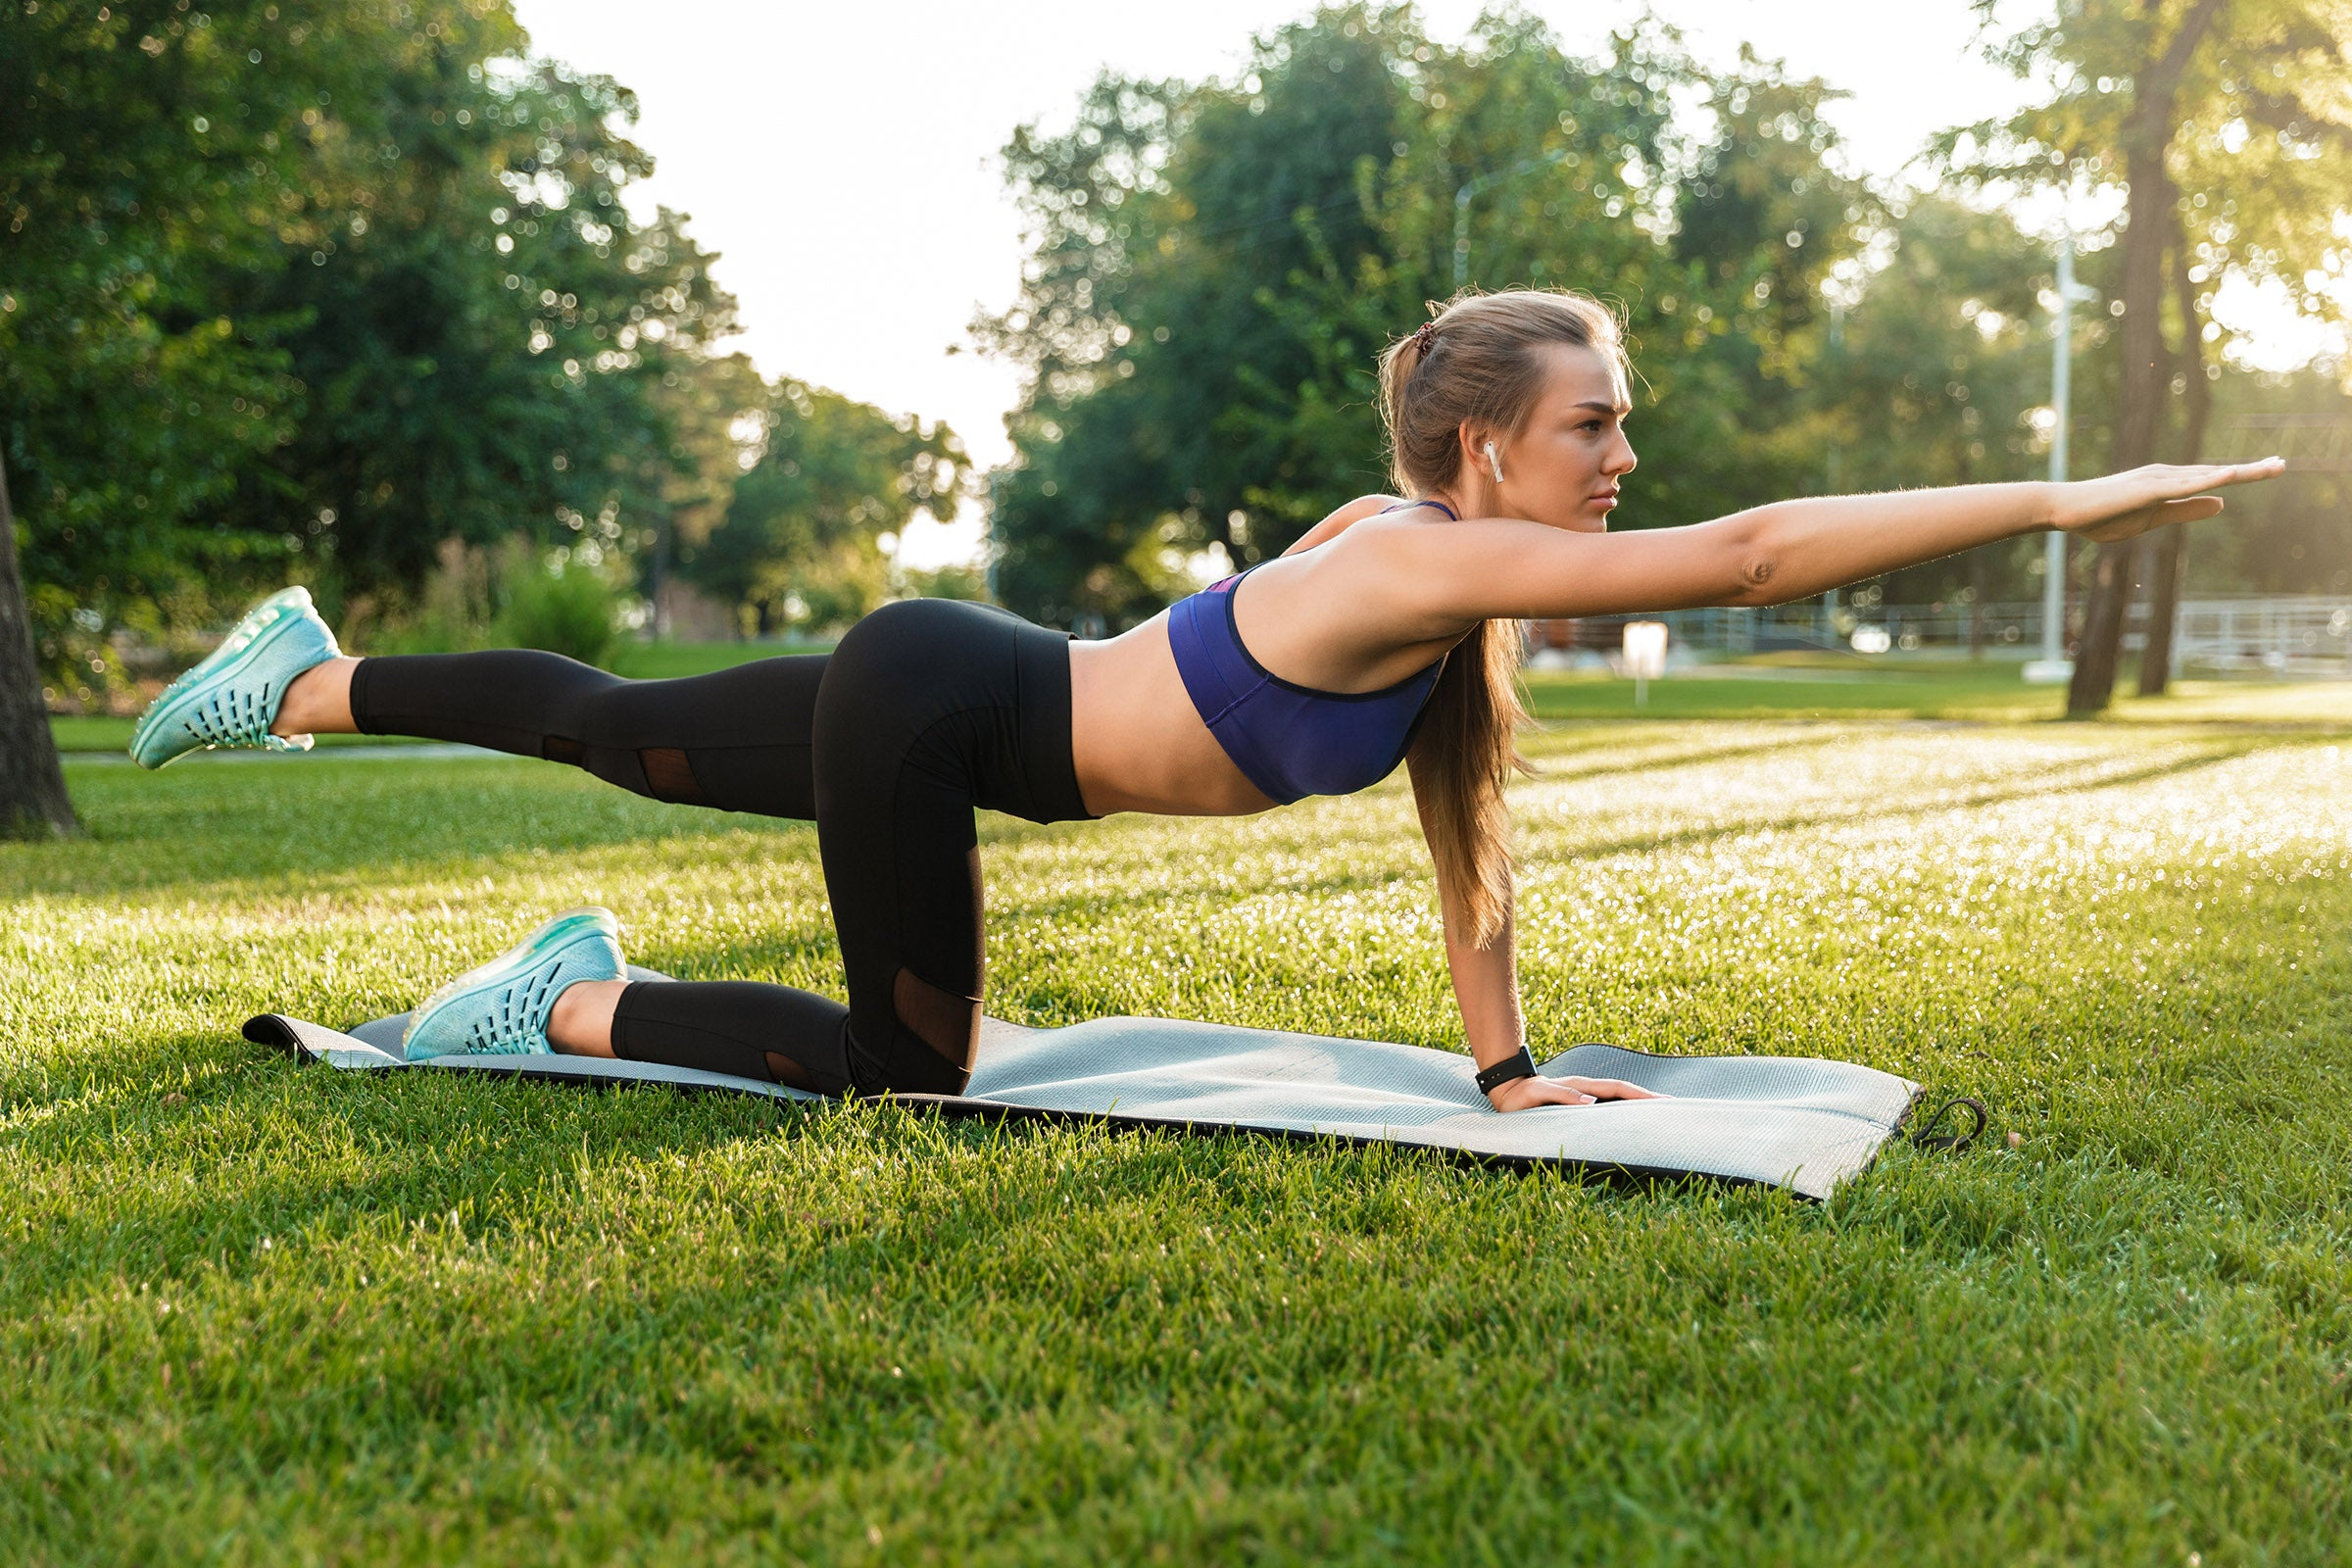 A strong core from resistance training limits stresses on your spine, preventing nagging lower back discomfort and pain.